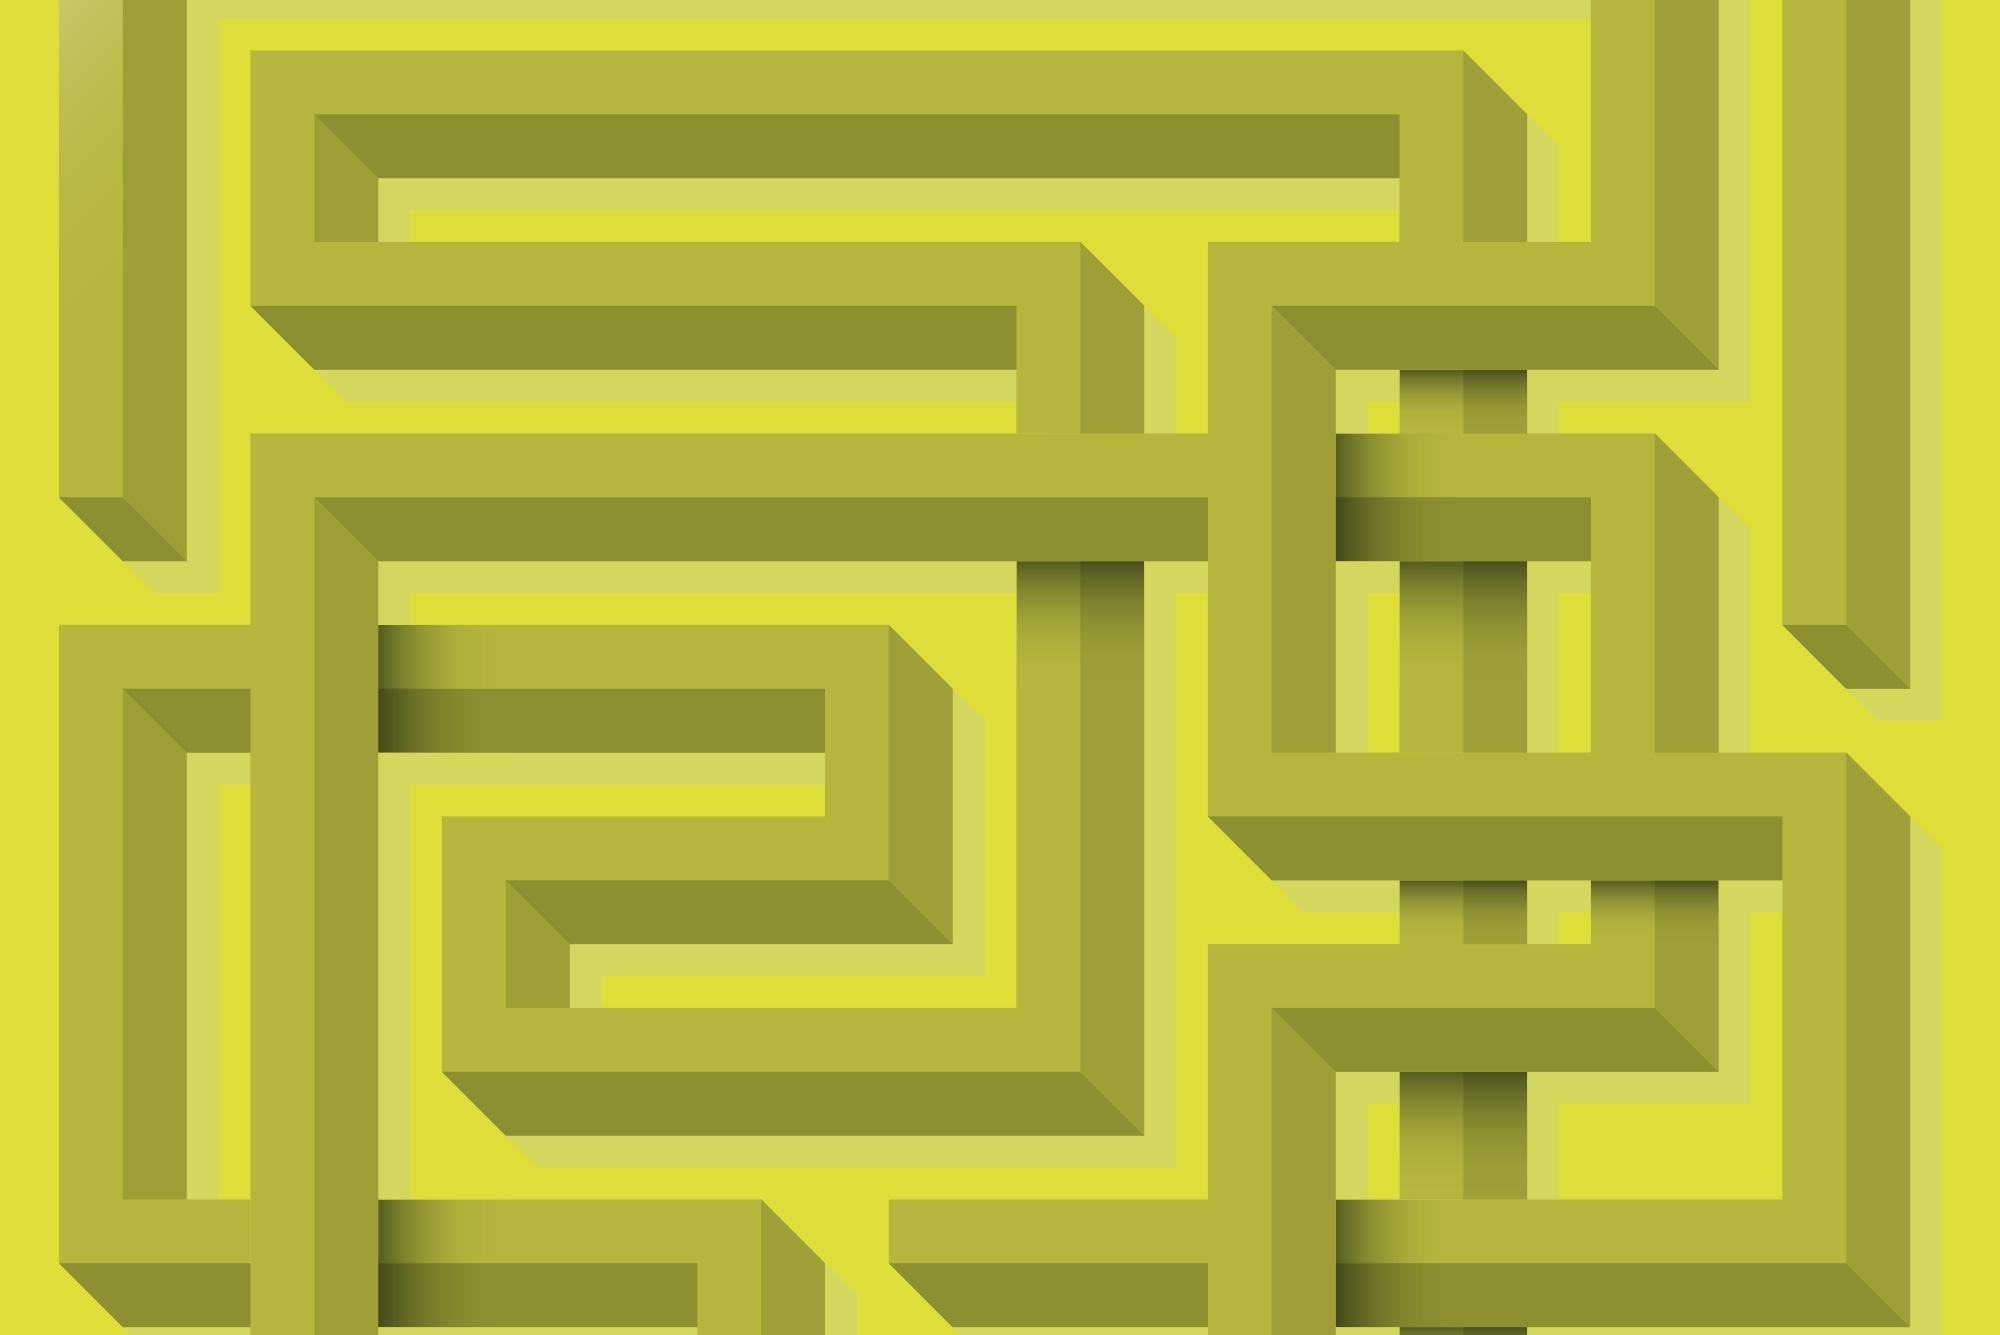 Pattern on yellow background - Fantastic digital experience